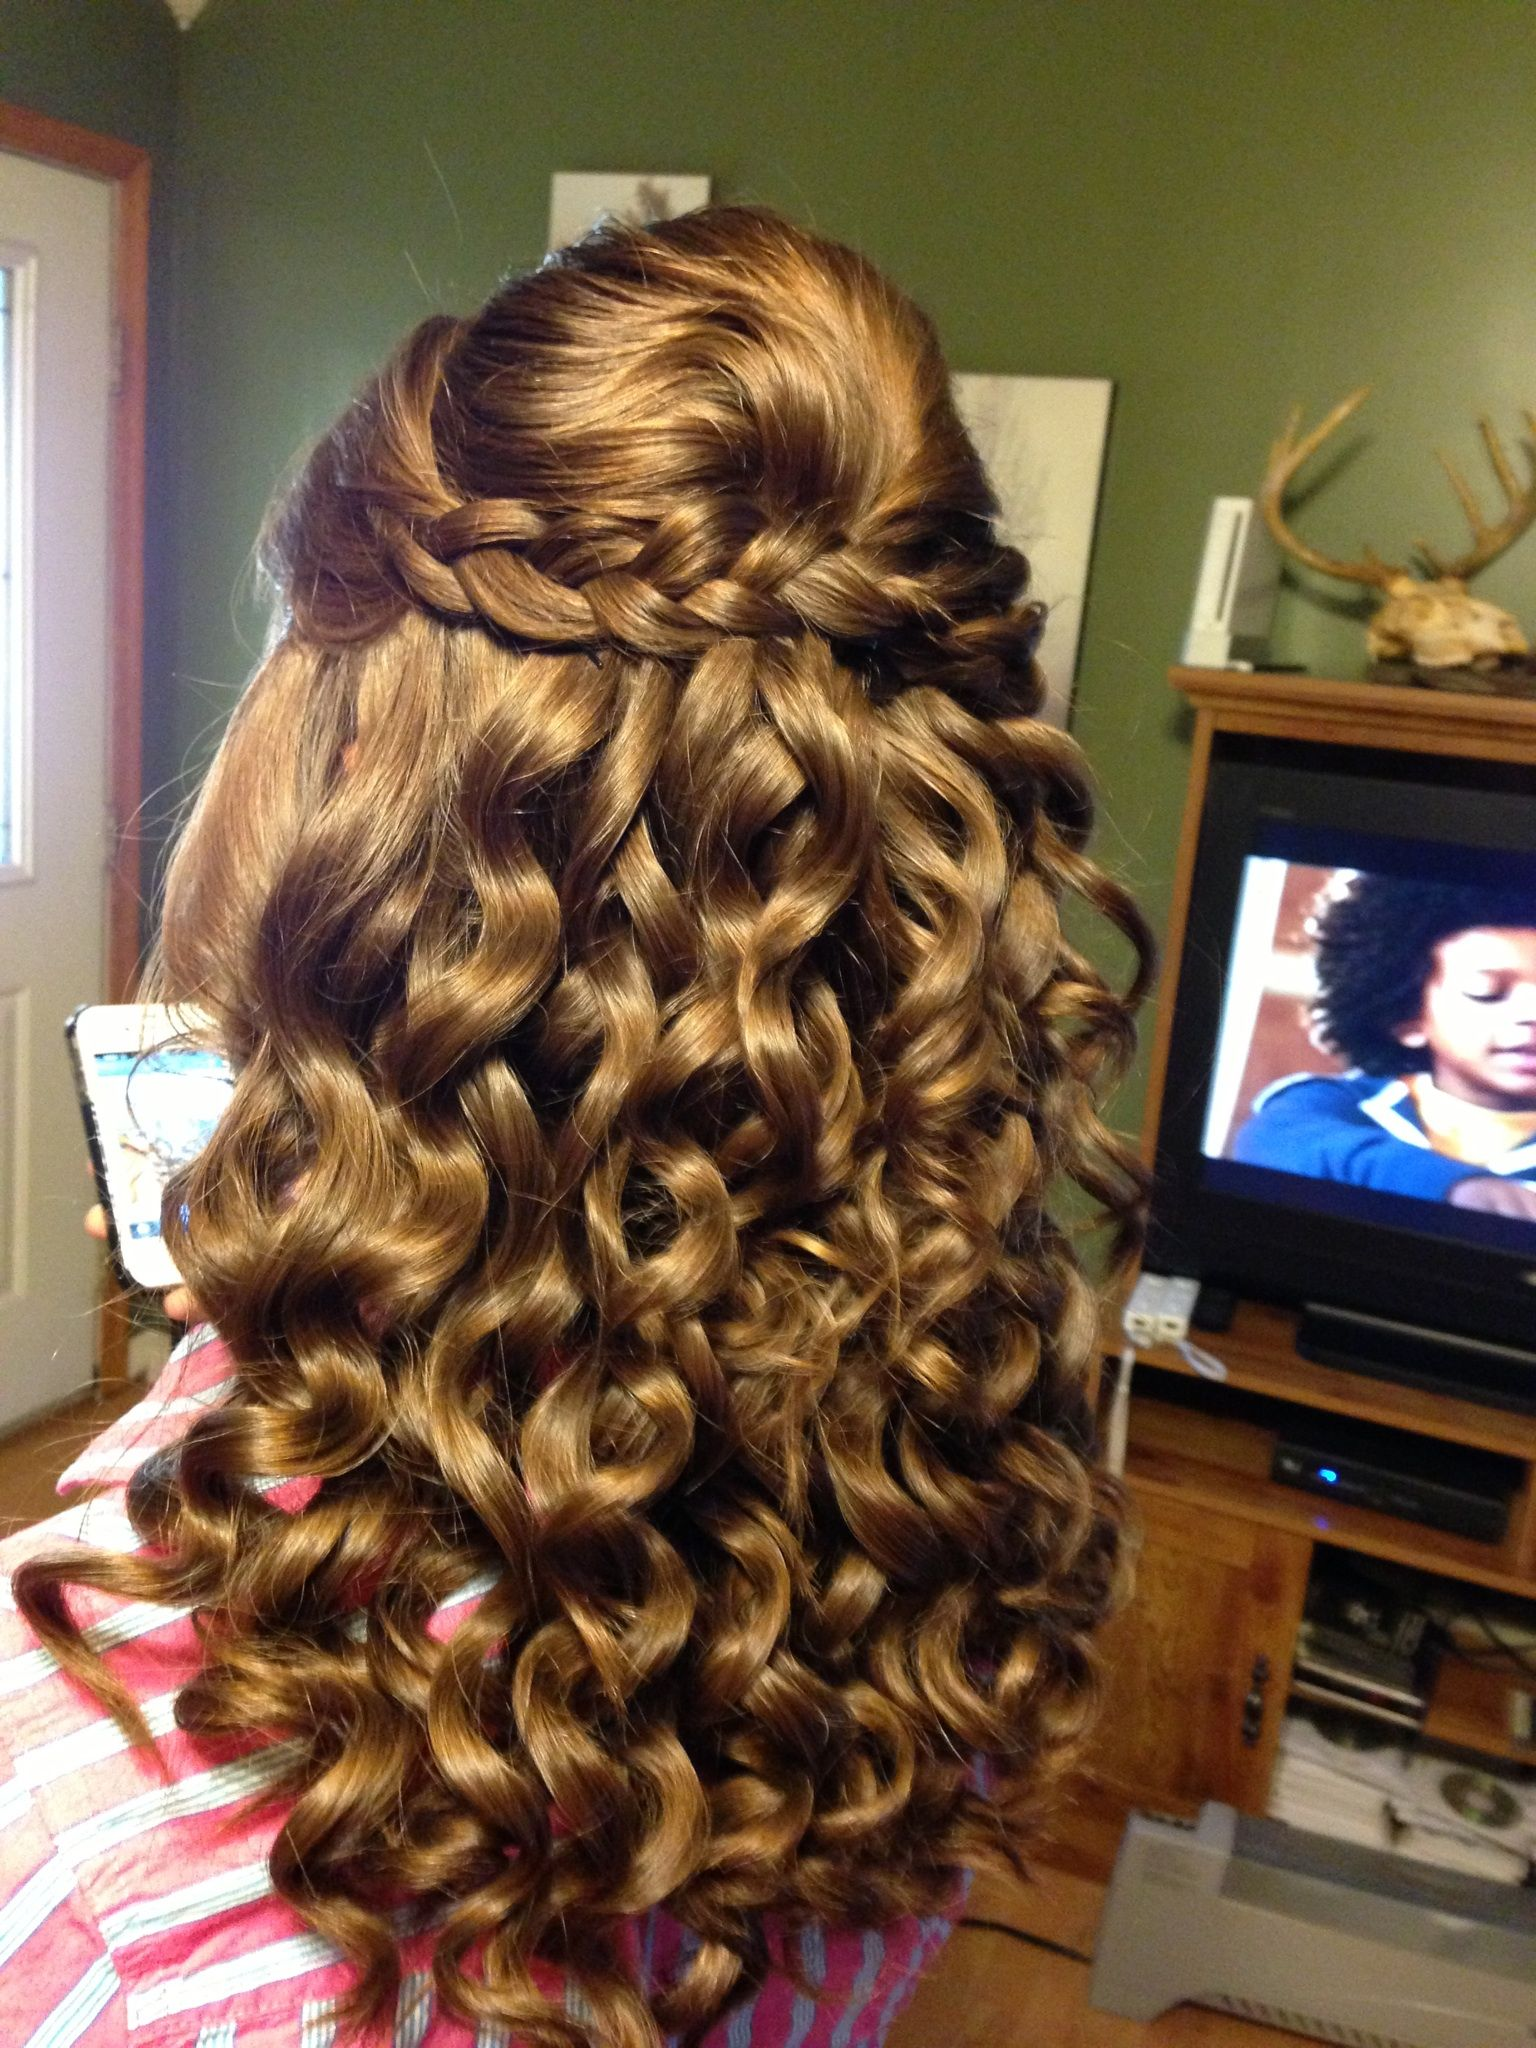 23 Prom Hairstyles Ideas For Long Hair Popular Haircuts Hair Styles Curly Homecoming Hairstyles Curly Prom Hair